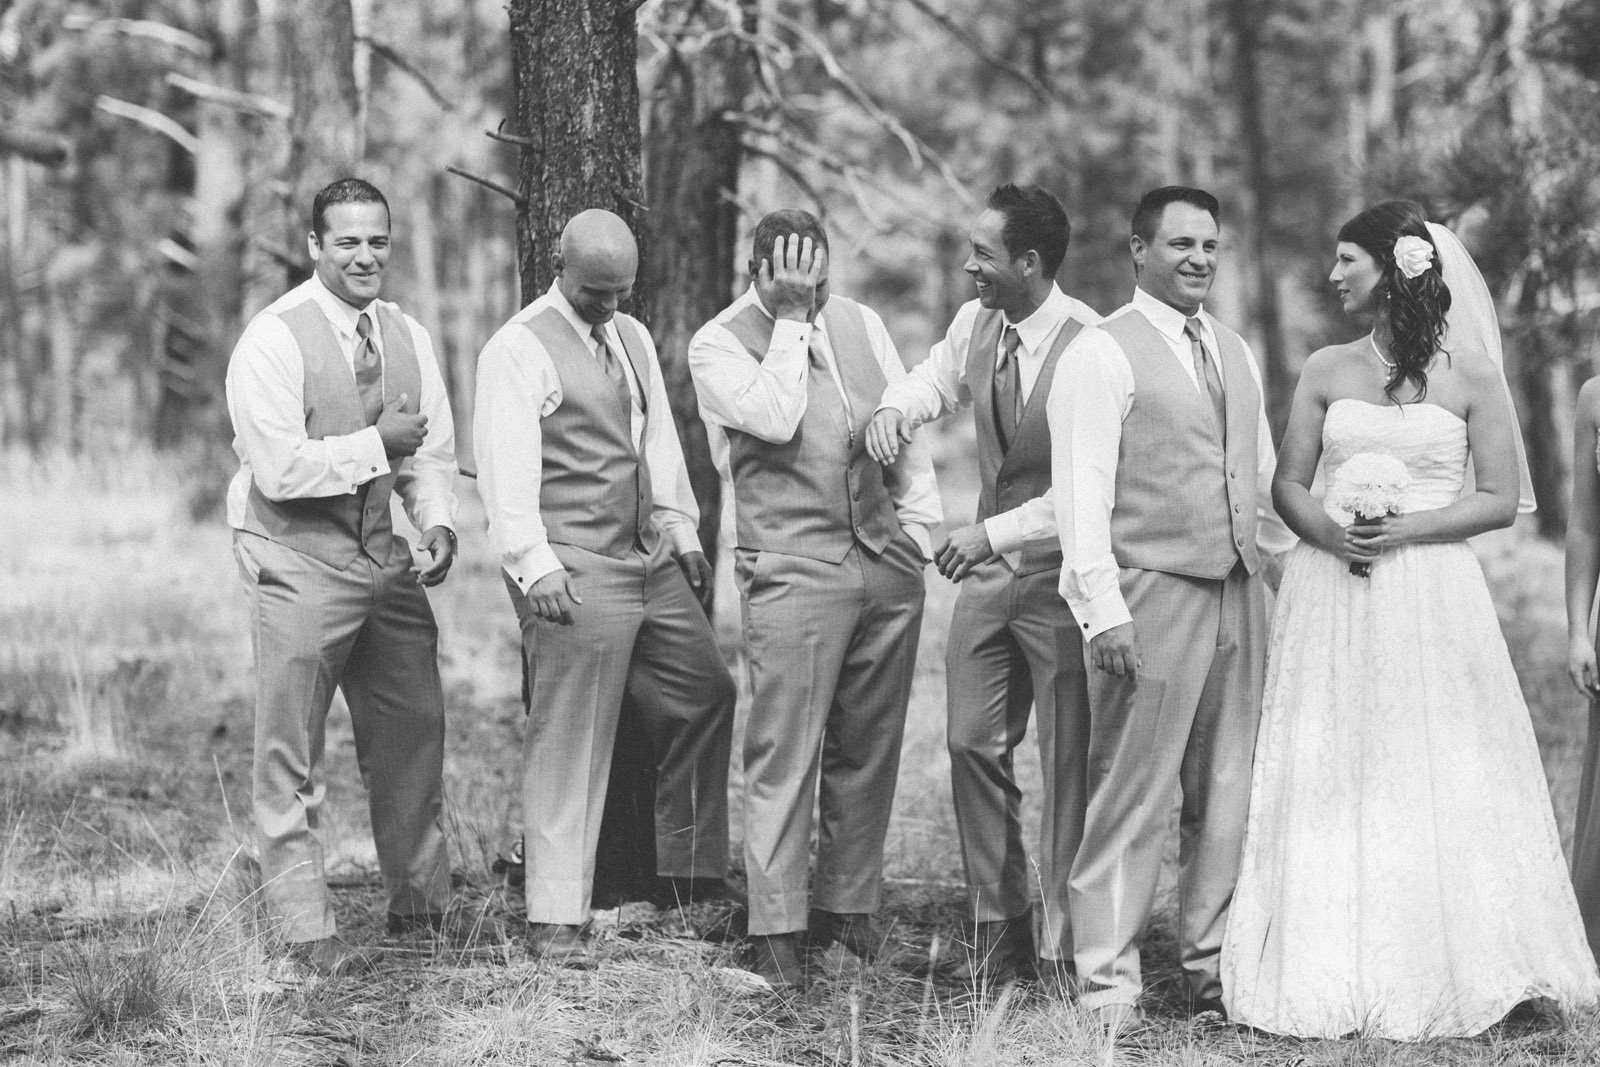 091-groom-wedding-cabin-woods-forest-pictures-photos-dress-photography-portraits-wedding-party-party